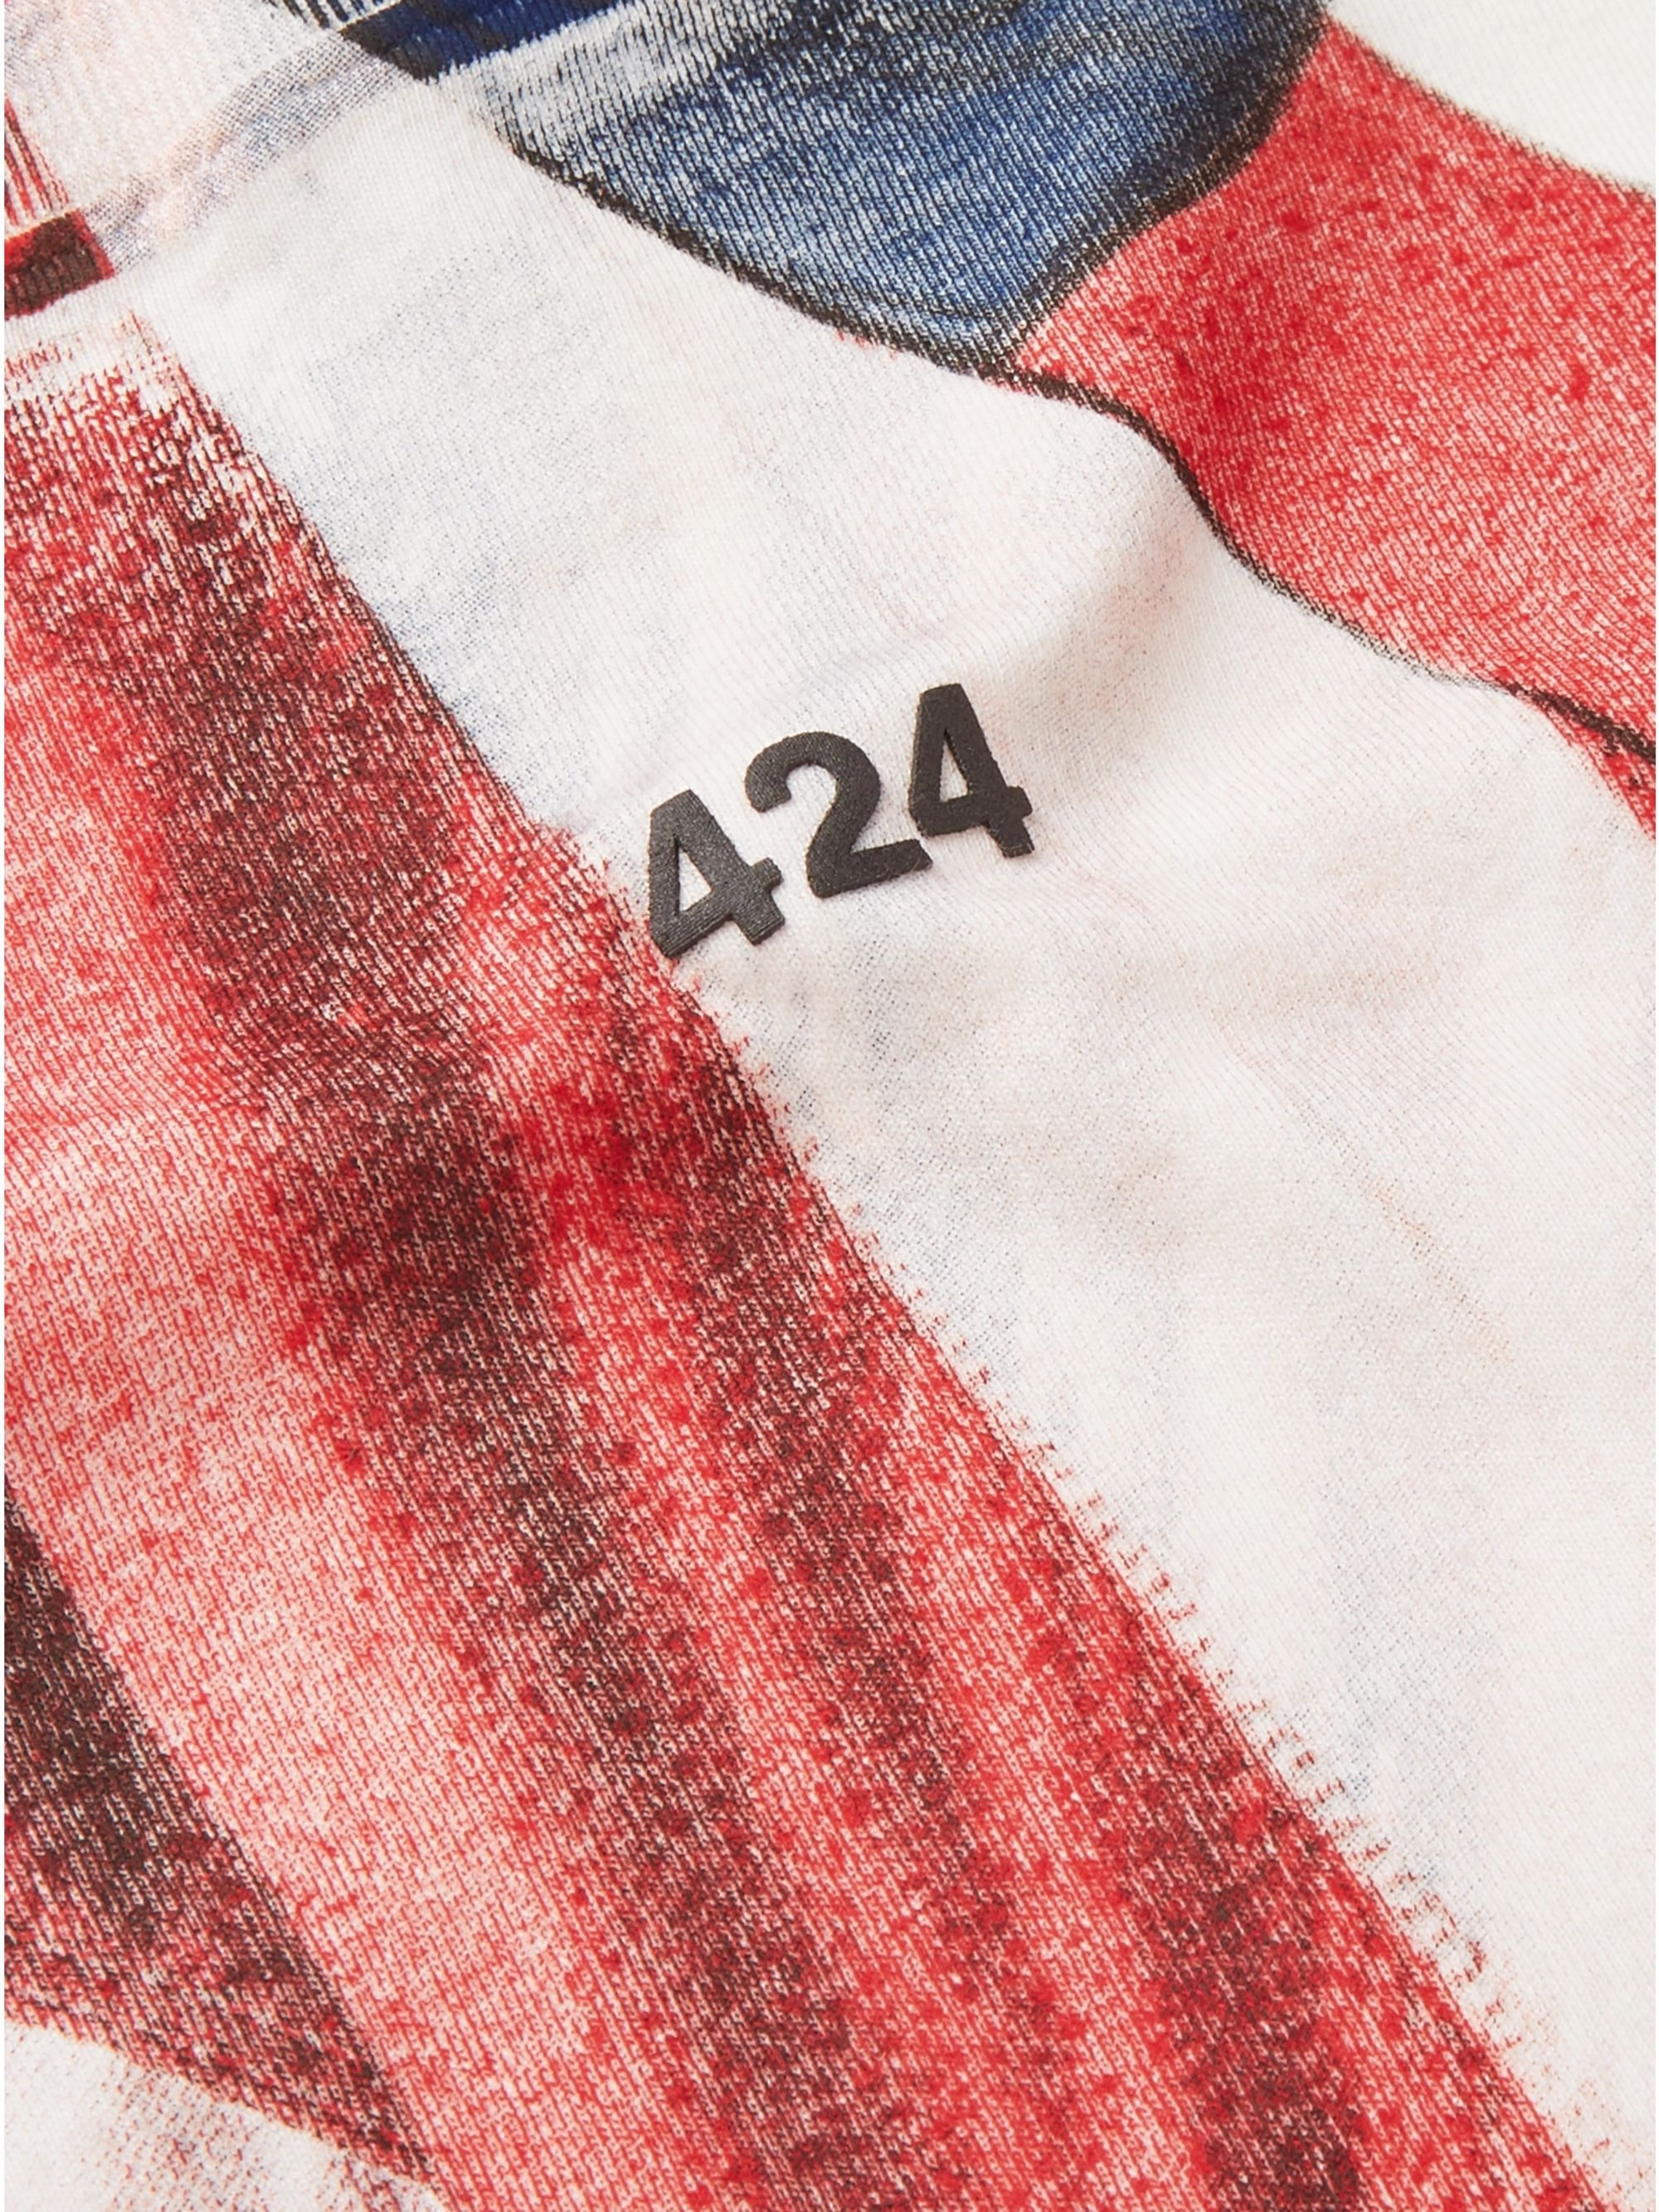 424 Printed Cotton-Jersey T-Shirt